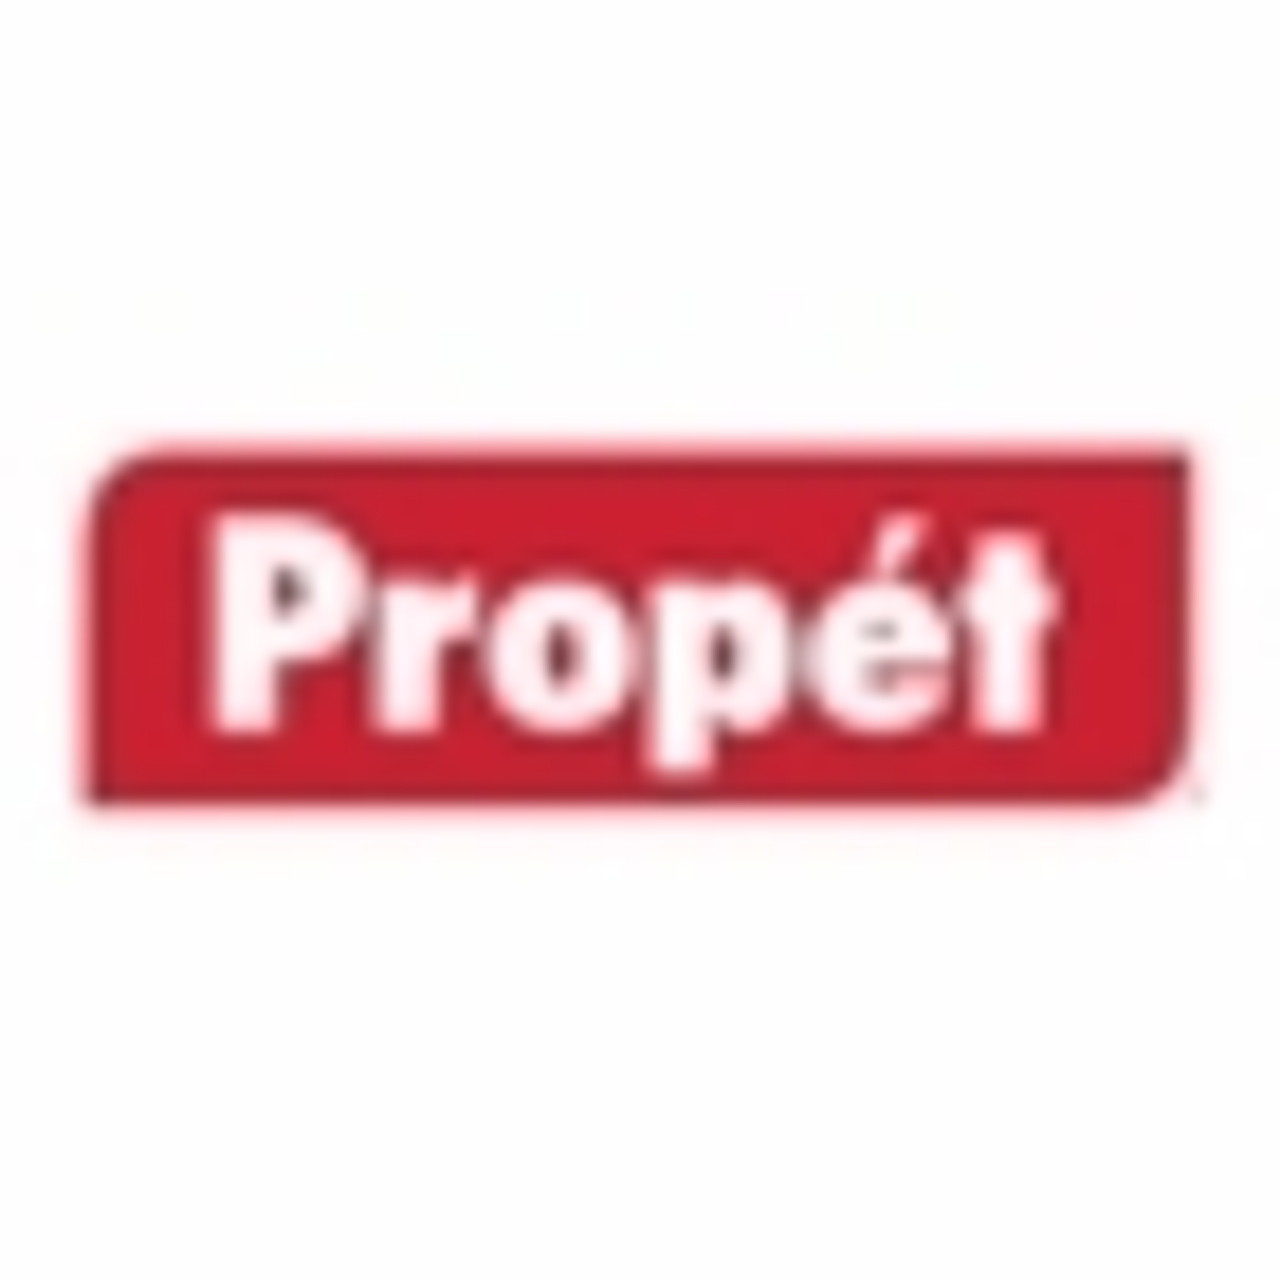 Propet Shoes, Boots, Sandals & Sneakers